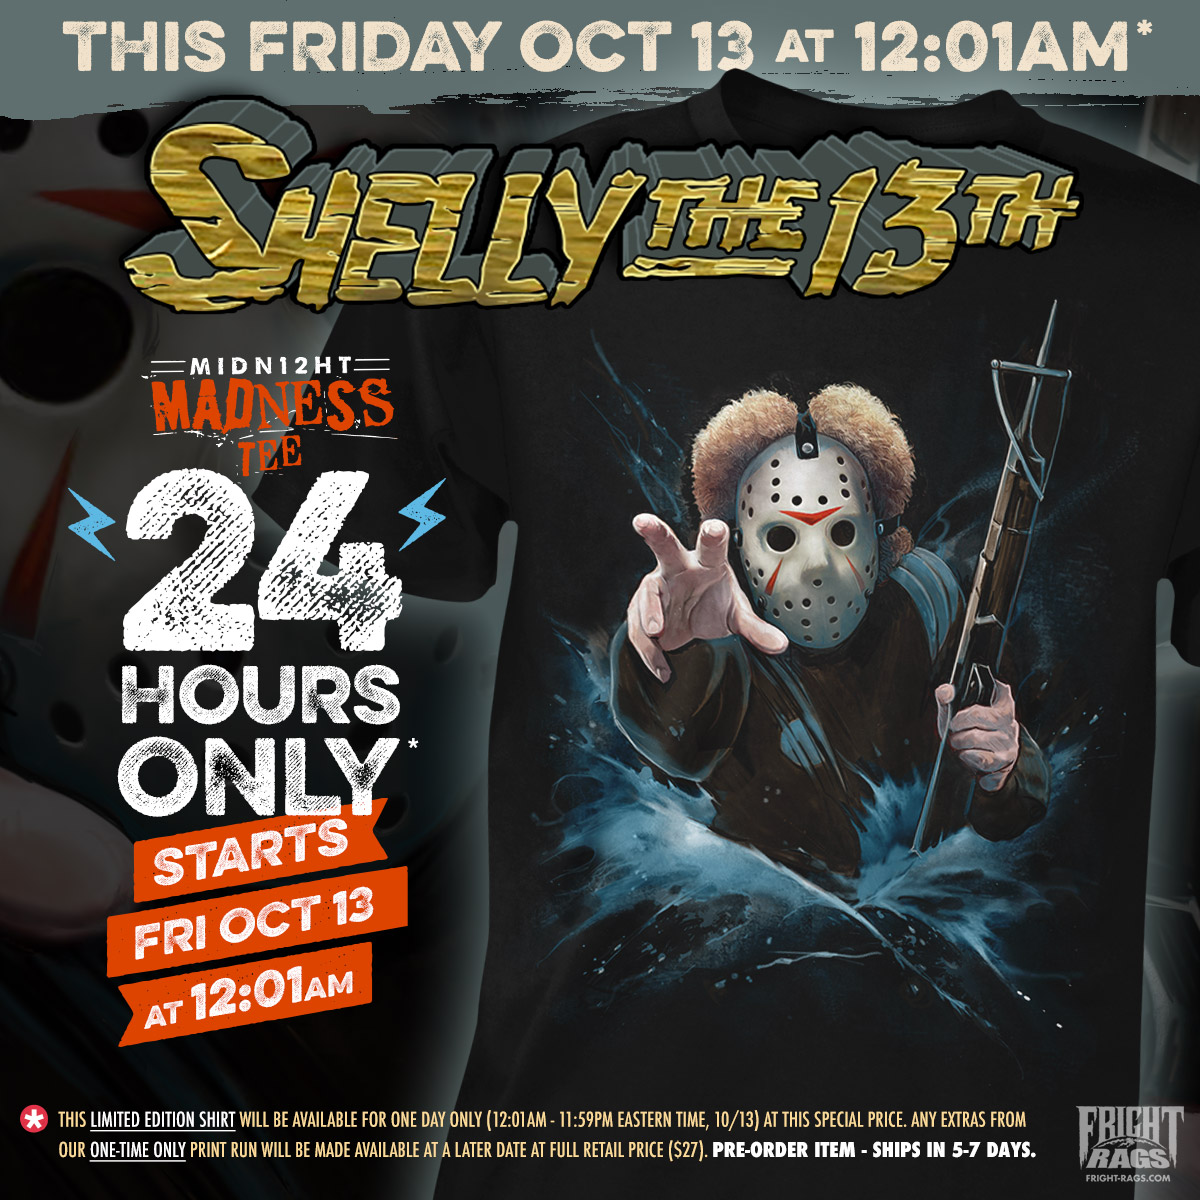 Fright-Rags drops their Shelly the 13th tee!